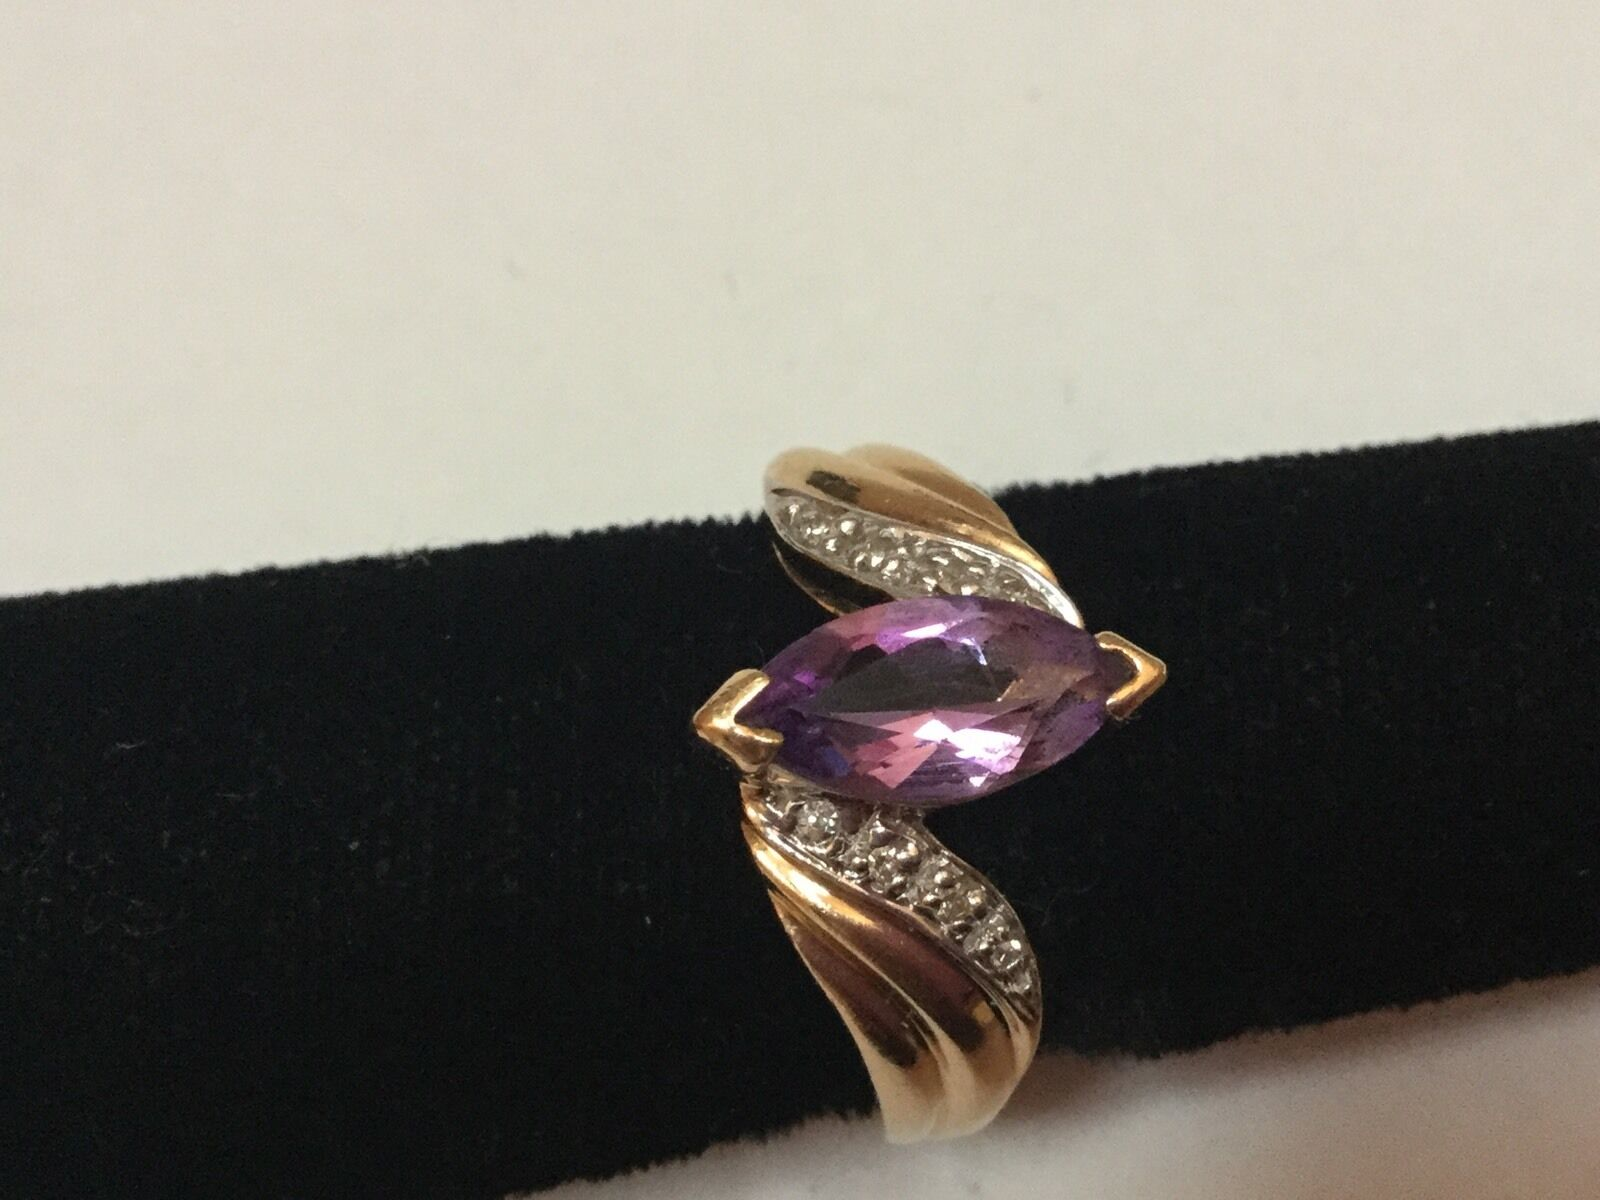 Vintage 14k Yellow gold .75 CT Marquise Shaped Amethyst Diamonds Ring Size 6.5